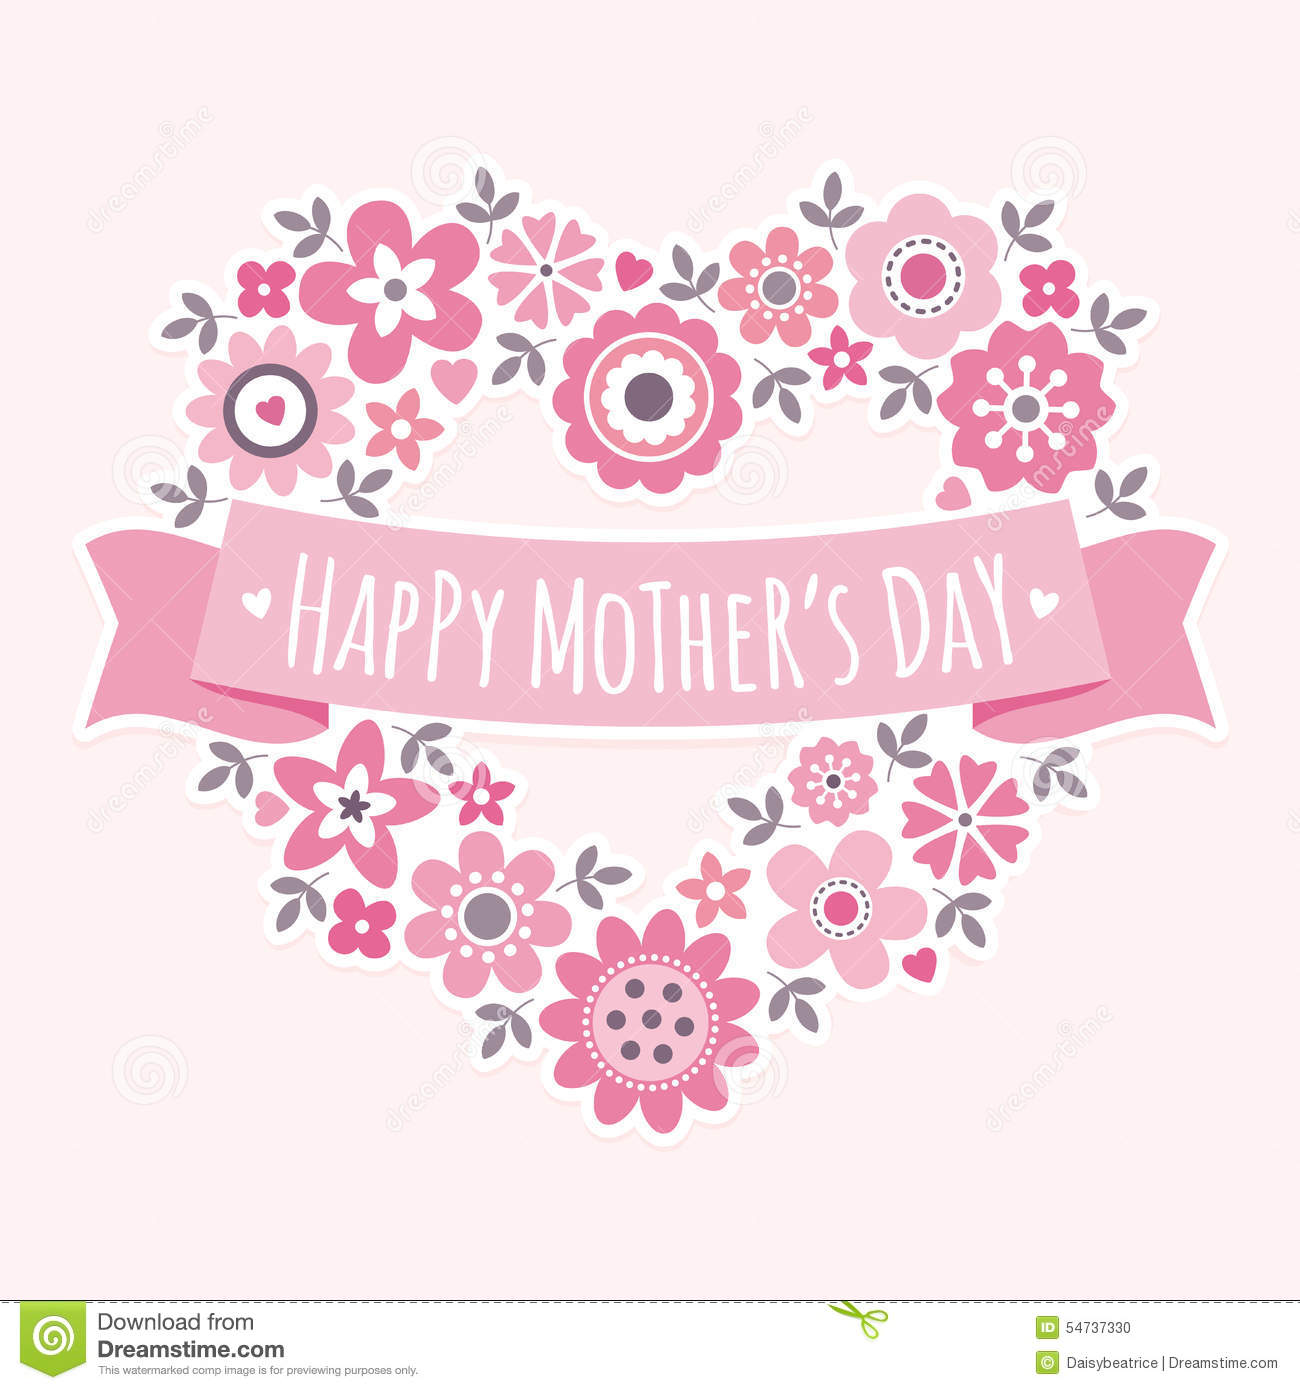 Happy Mothers Day Card Floral Heart Pink Stock Vector - Illustration ...